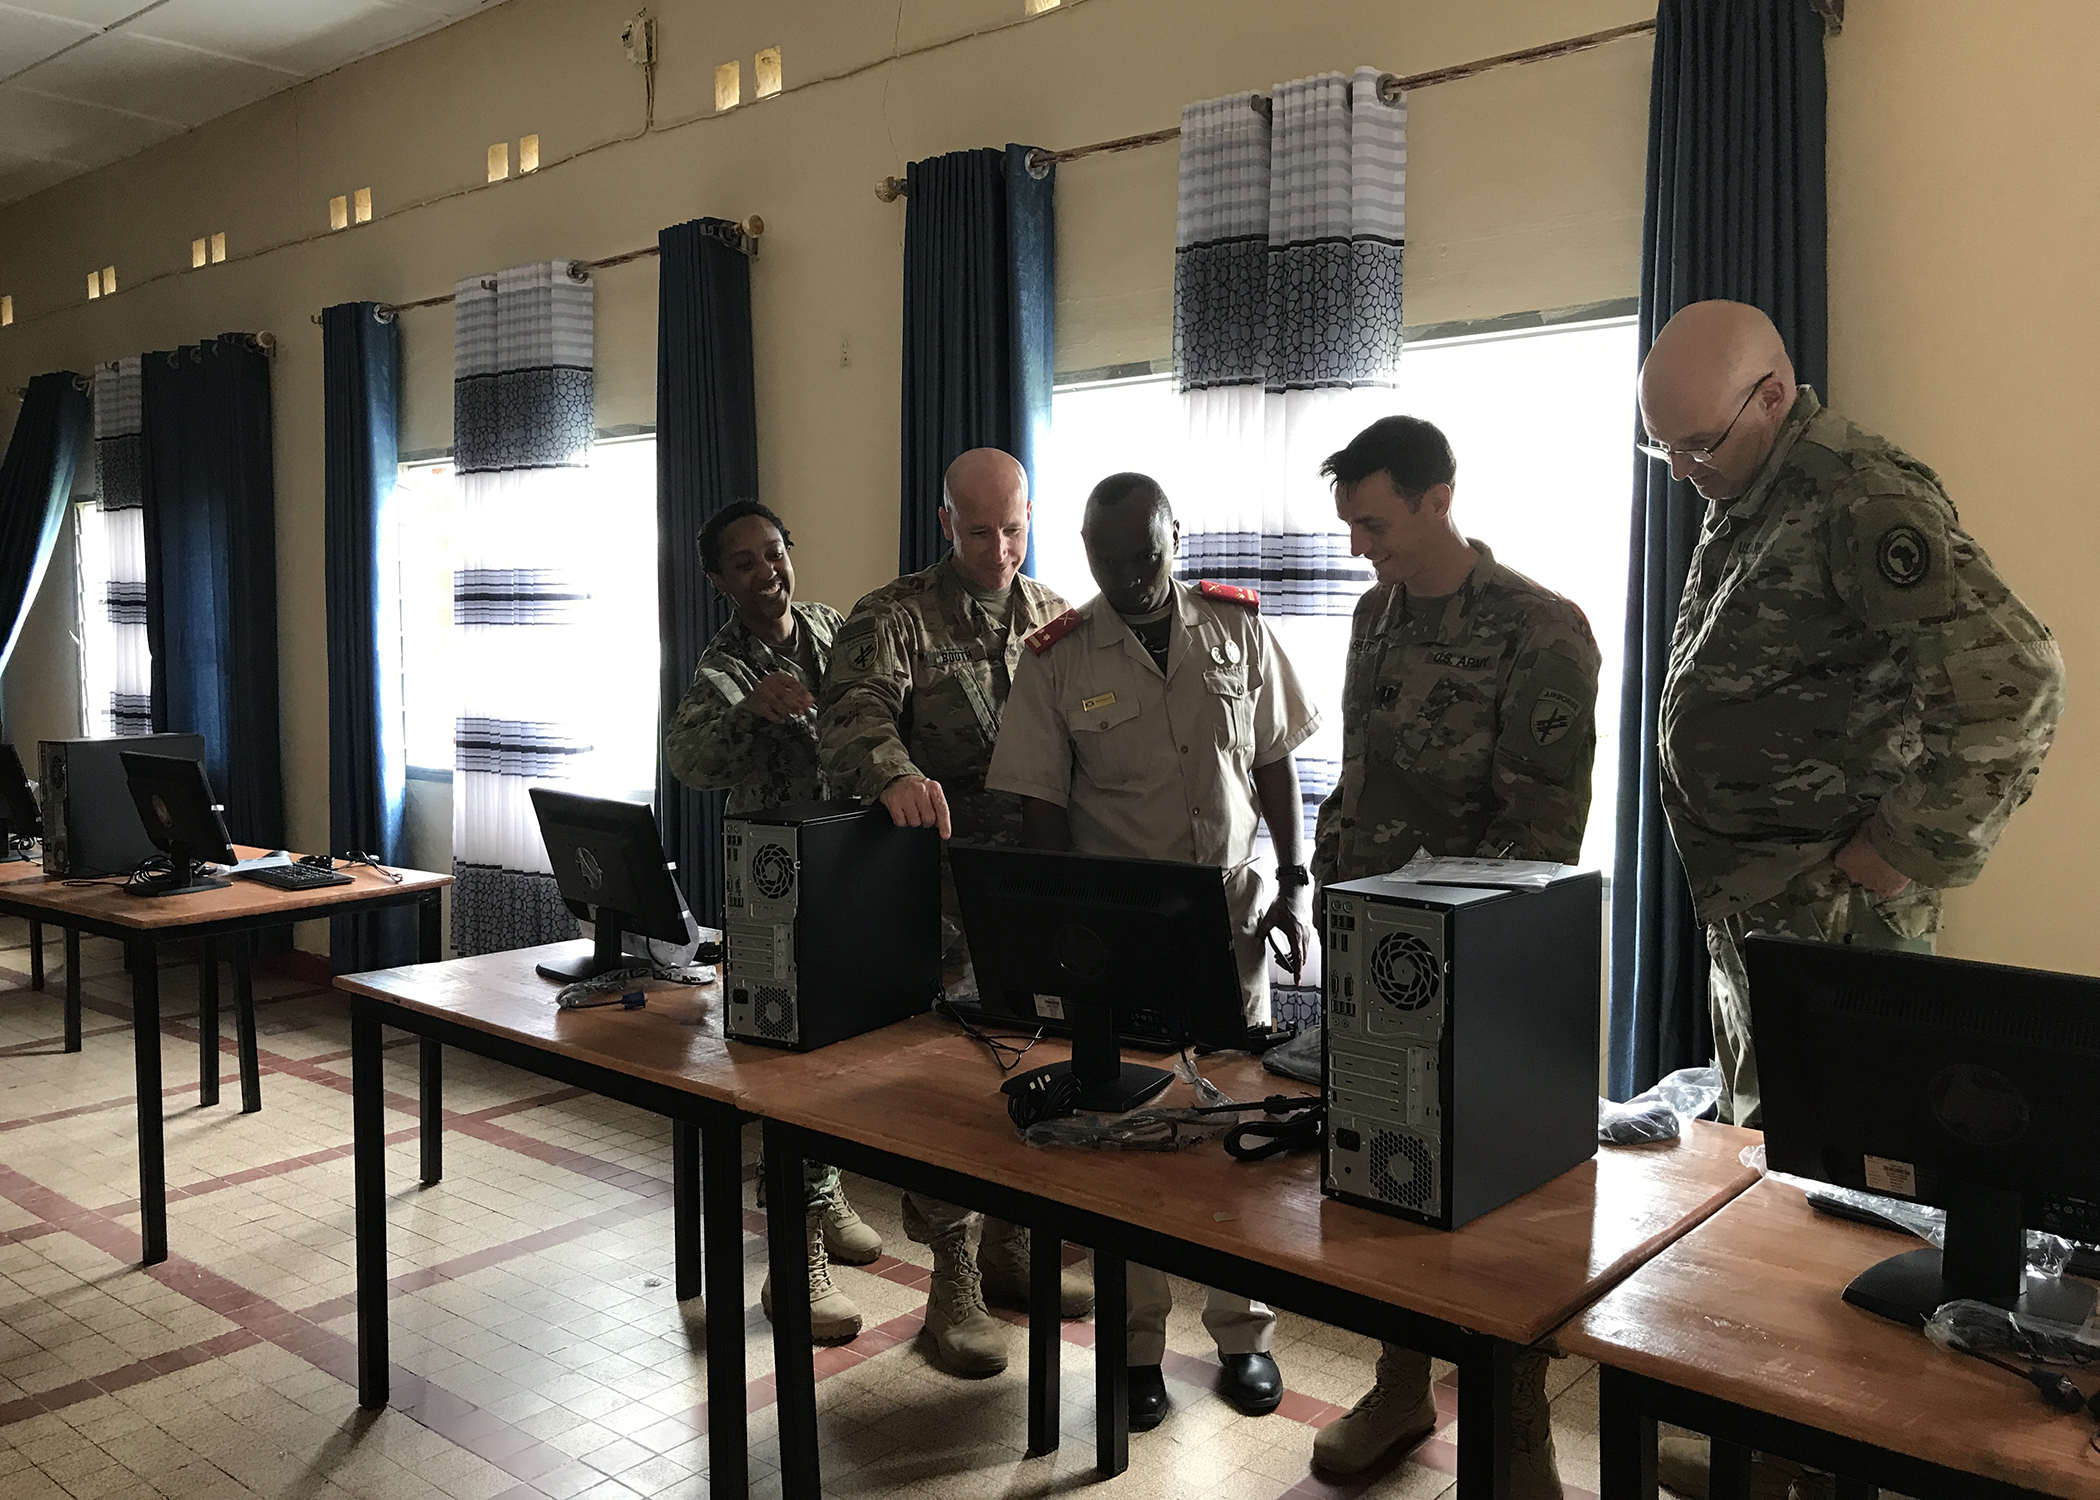 Combined Joint Task Force-Horn of Africa service members look at computer equipment, provided by Spirit of America, in the library of the Burundi National Defence Force Senior Command and Staff College (SCSC), in Kinanira, Burundi, May 15, 2019.  A team of CJTF-HOA service members visited Burundi to discuss best practices with the Burundi SCSC students. (Courtesy Photo)